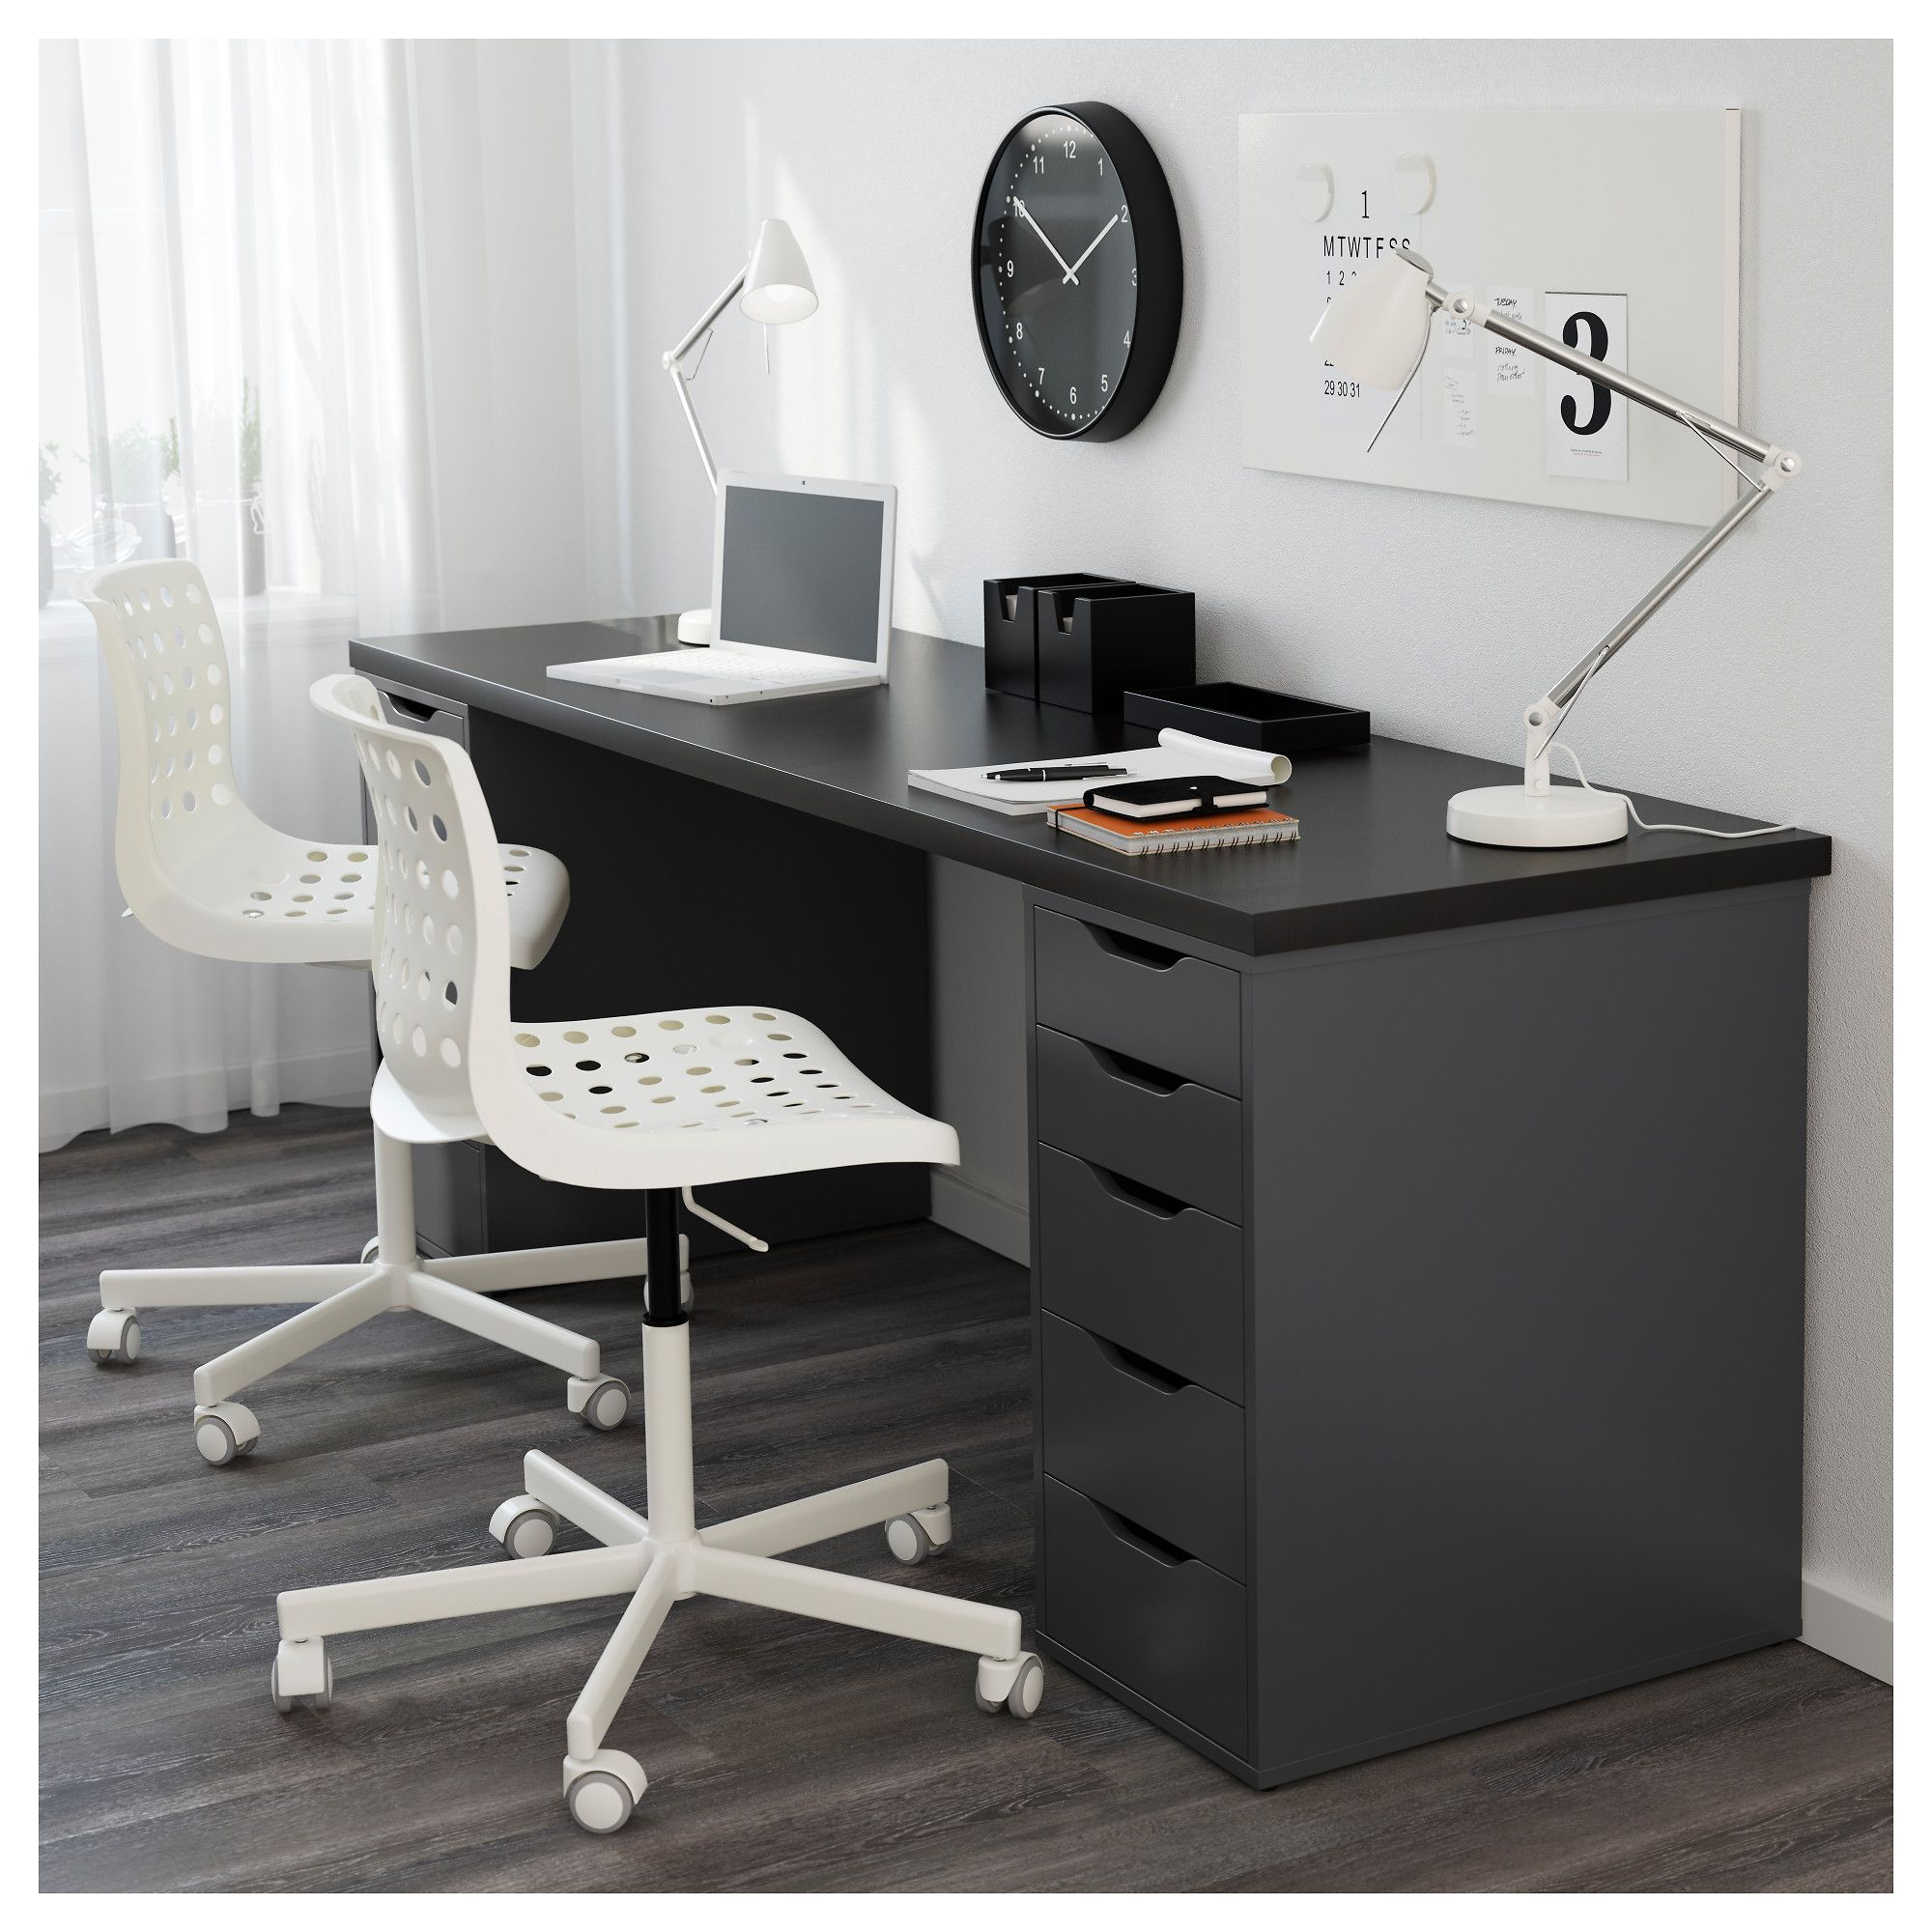 Shop For Furniture Home Accessories More Ikea Alex Drawers